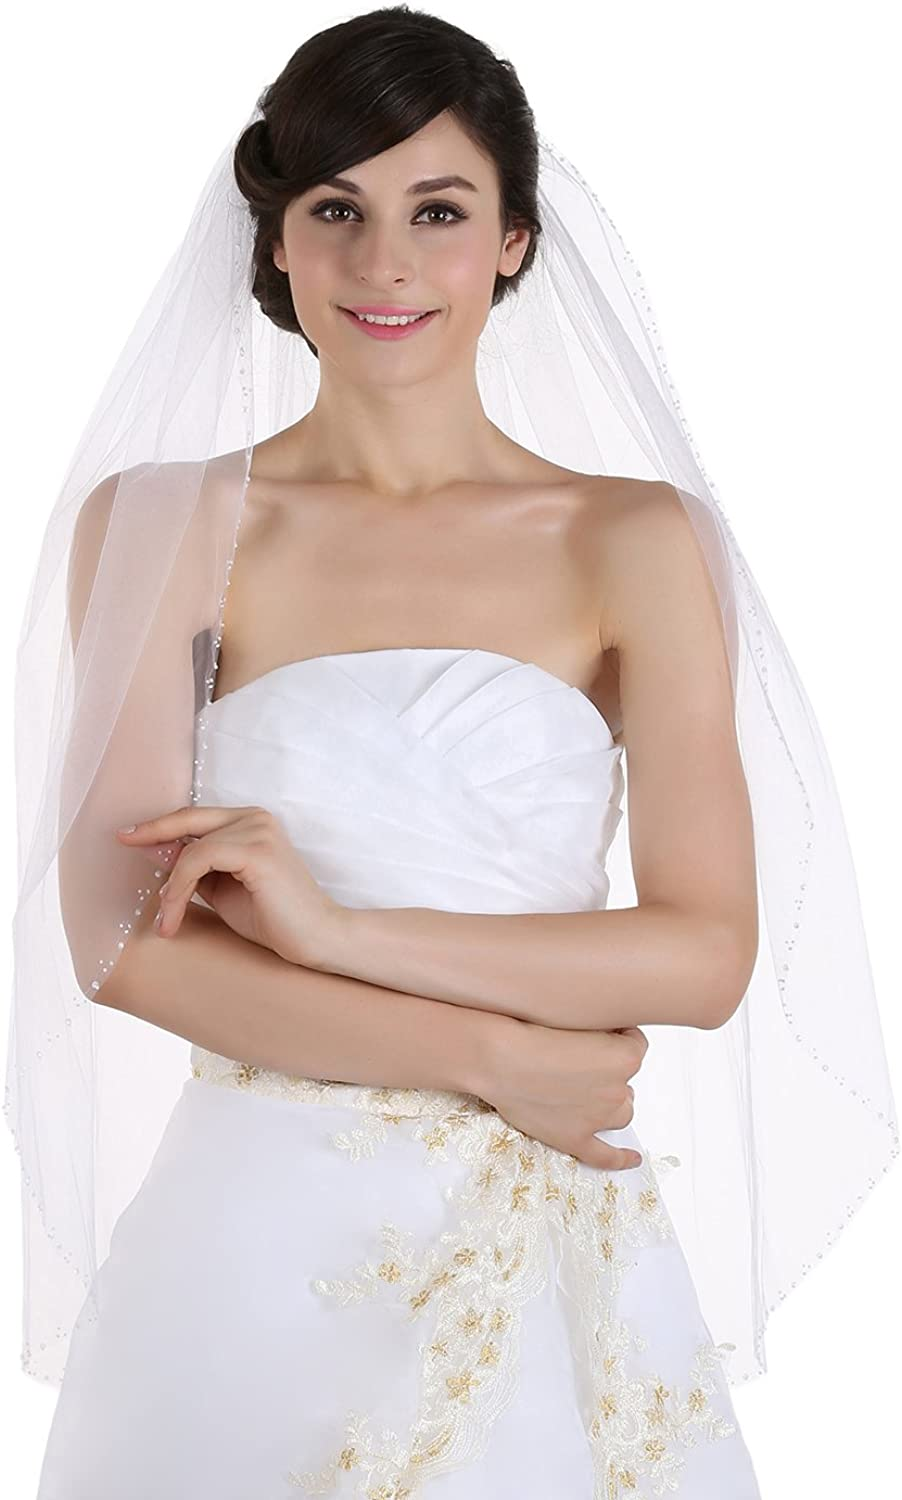 1T 1 Tier Beaded Edge Wedding Veil  Ivory Cathedral Length 108  V120